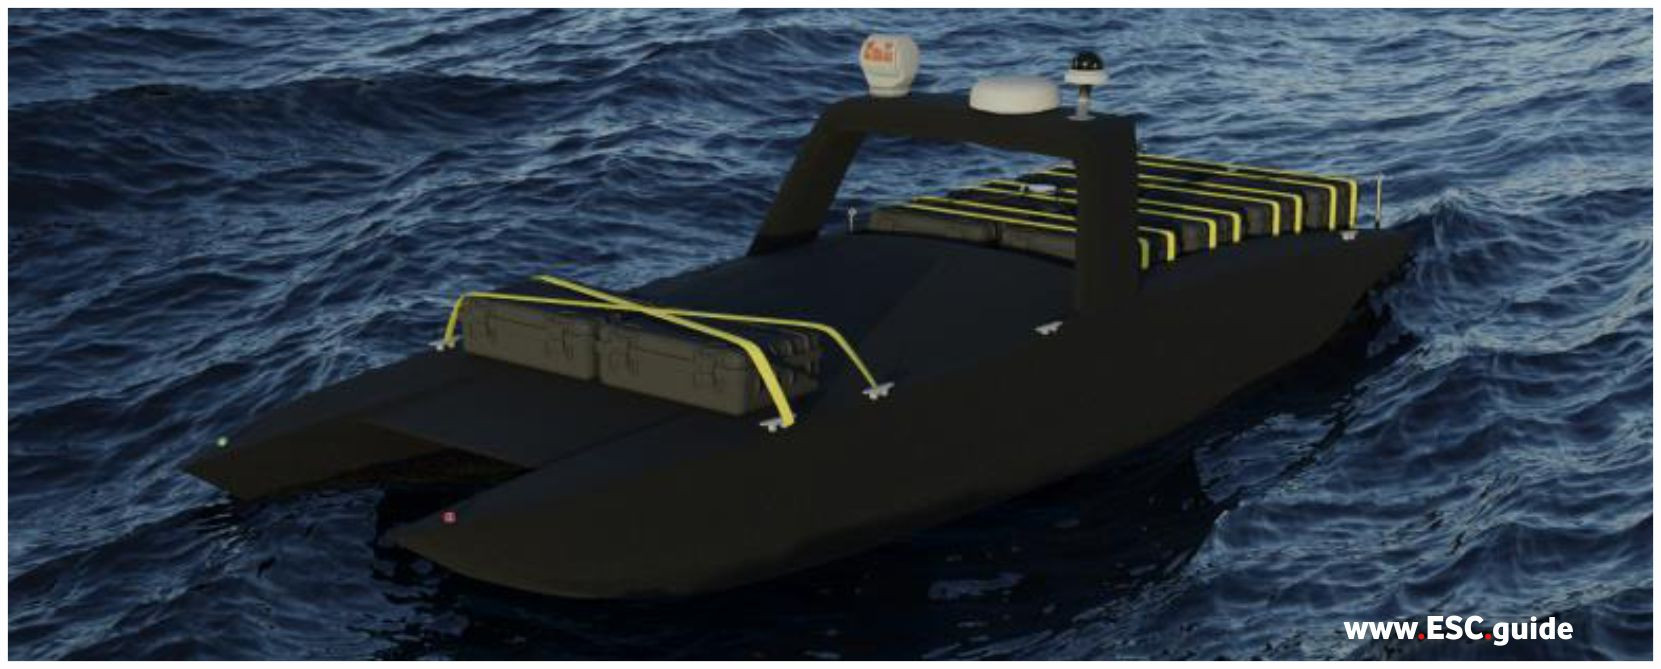 Configuration: MANTAS T38 Transporter rigged for transport from ship to shore or ship to ship.